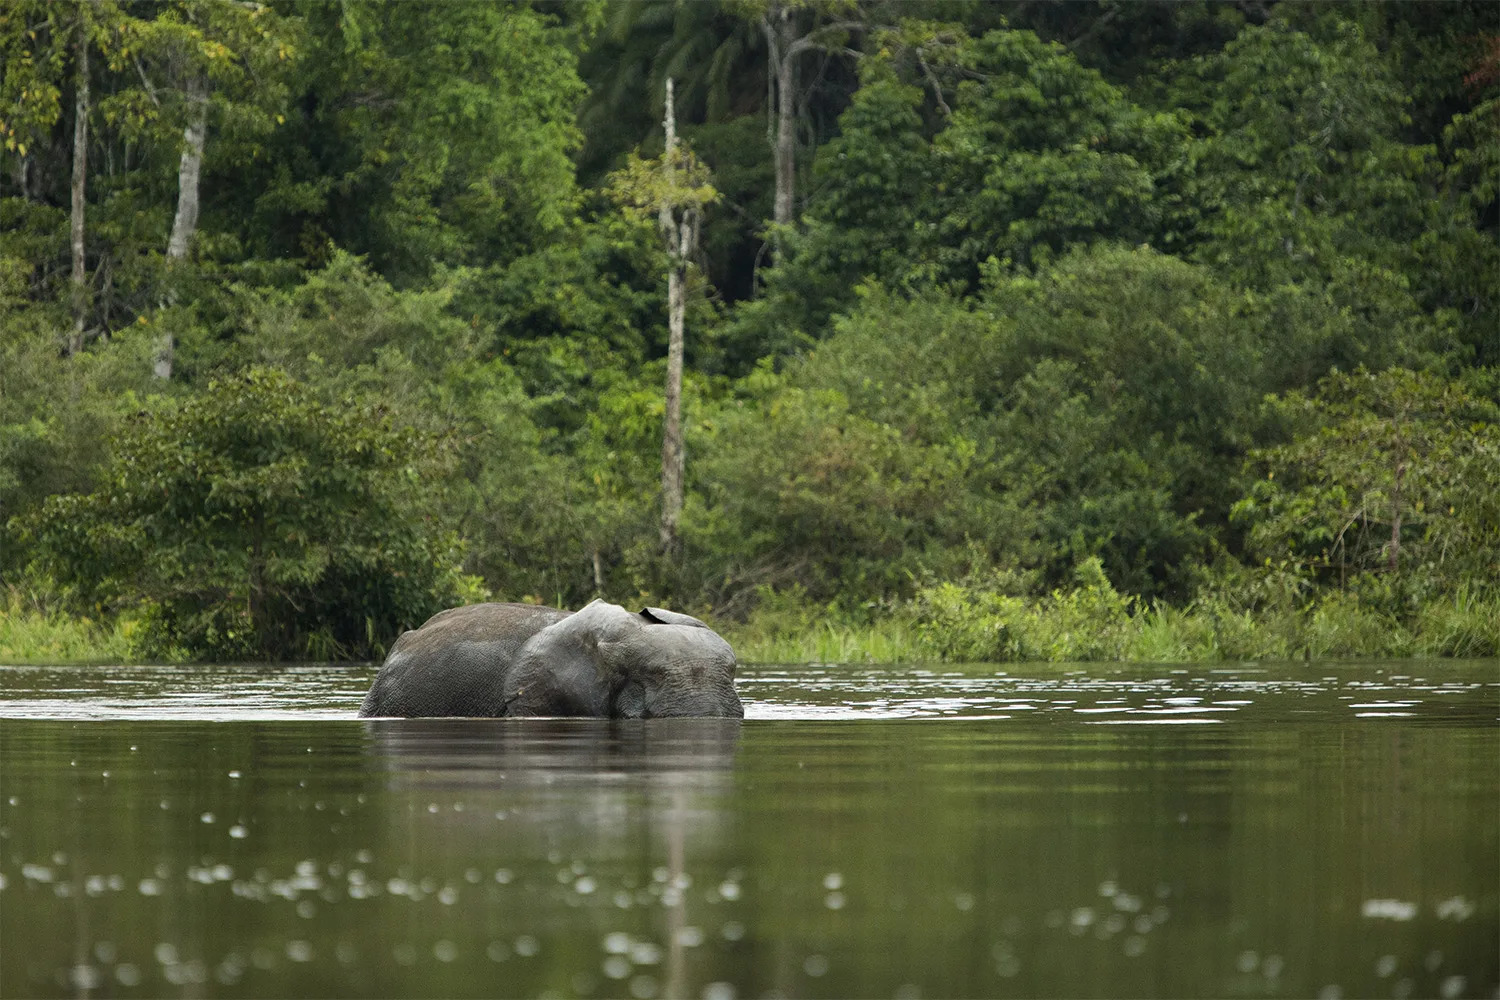 Elephant and river